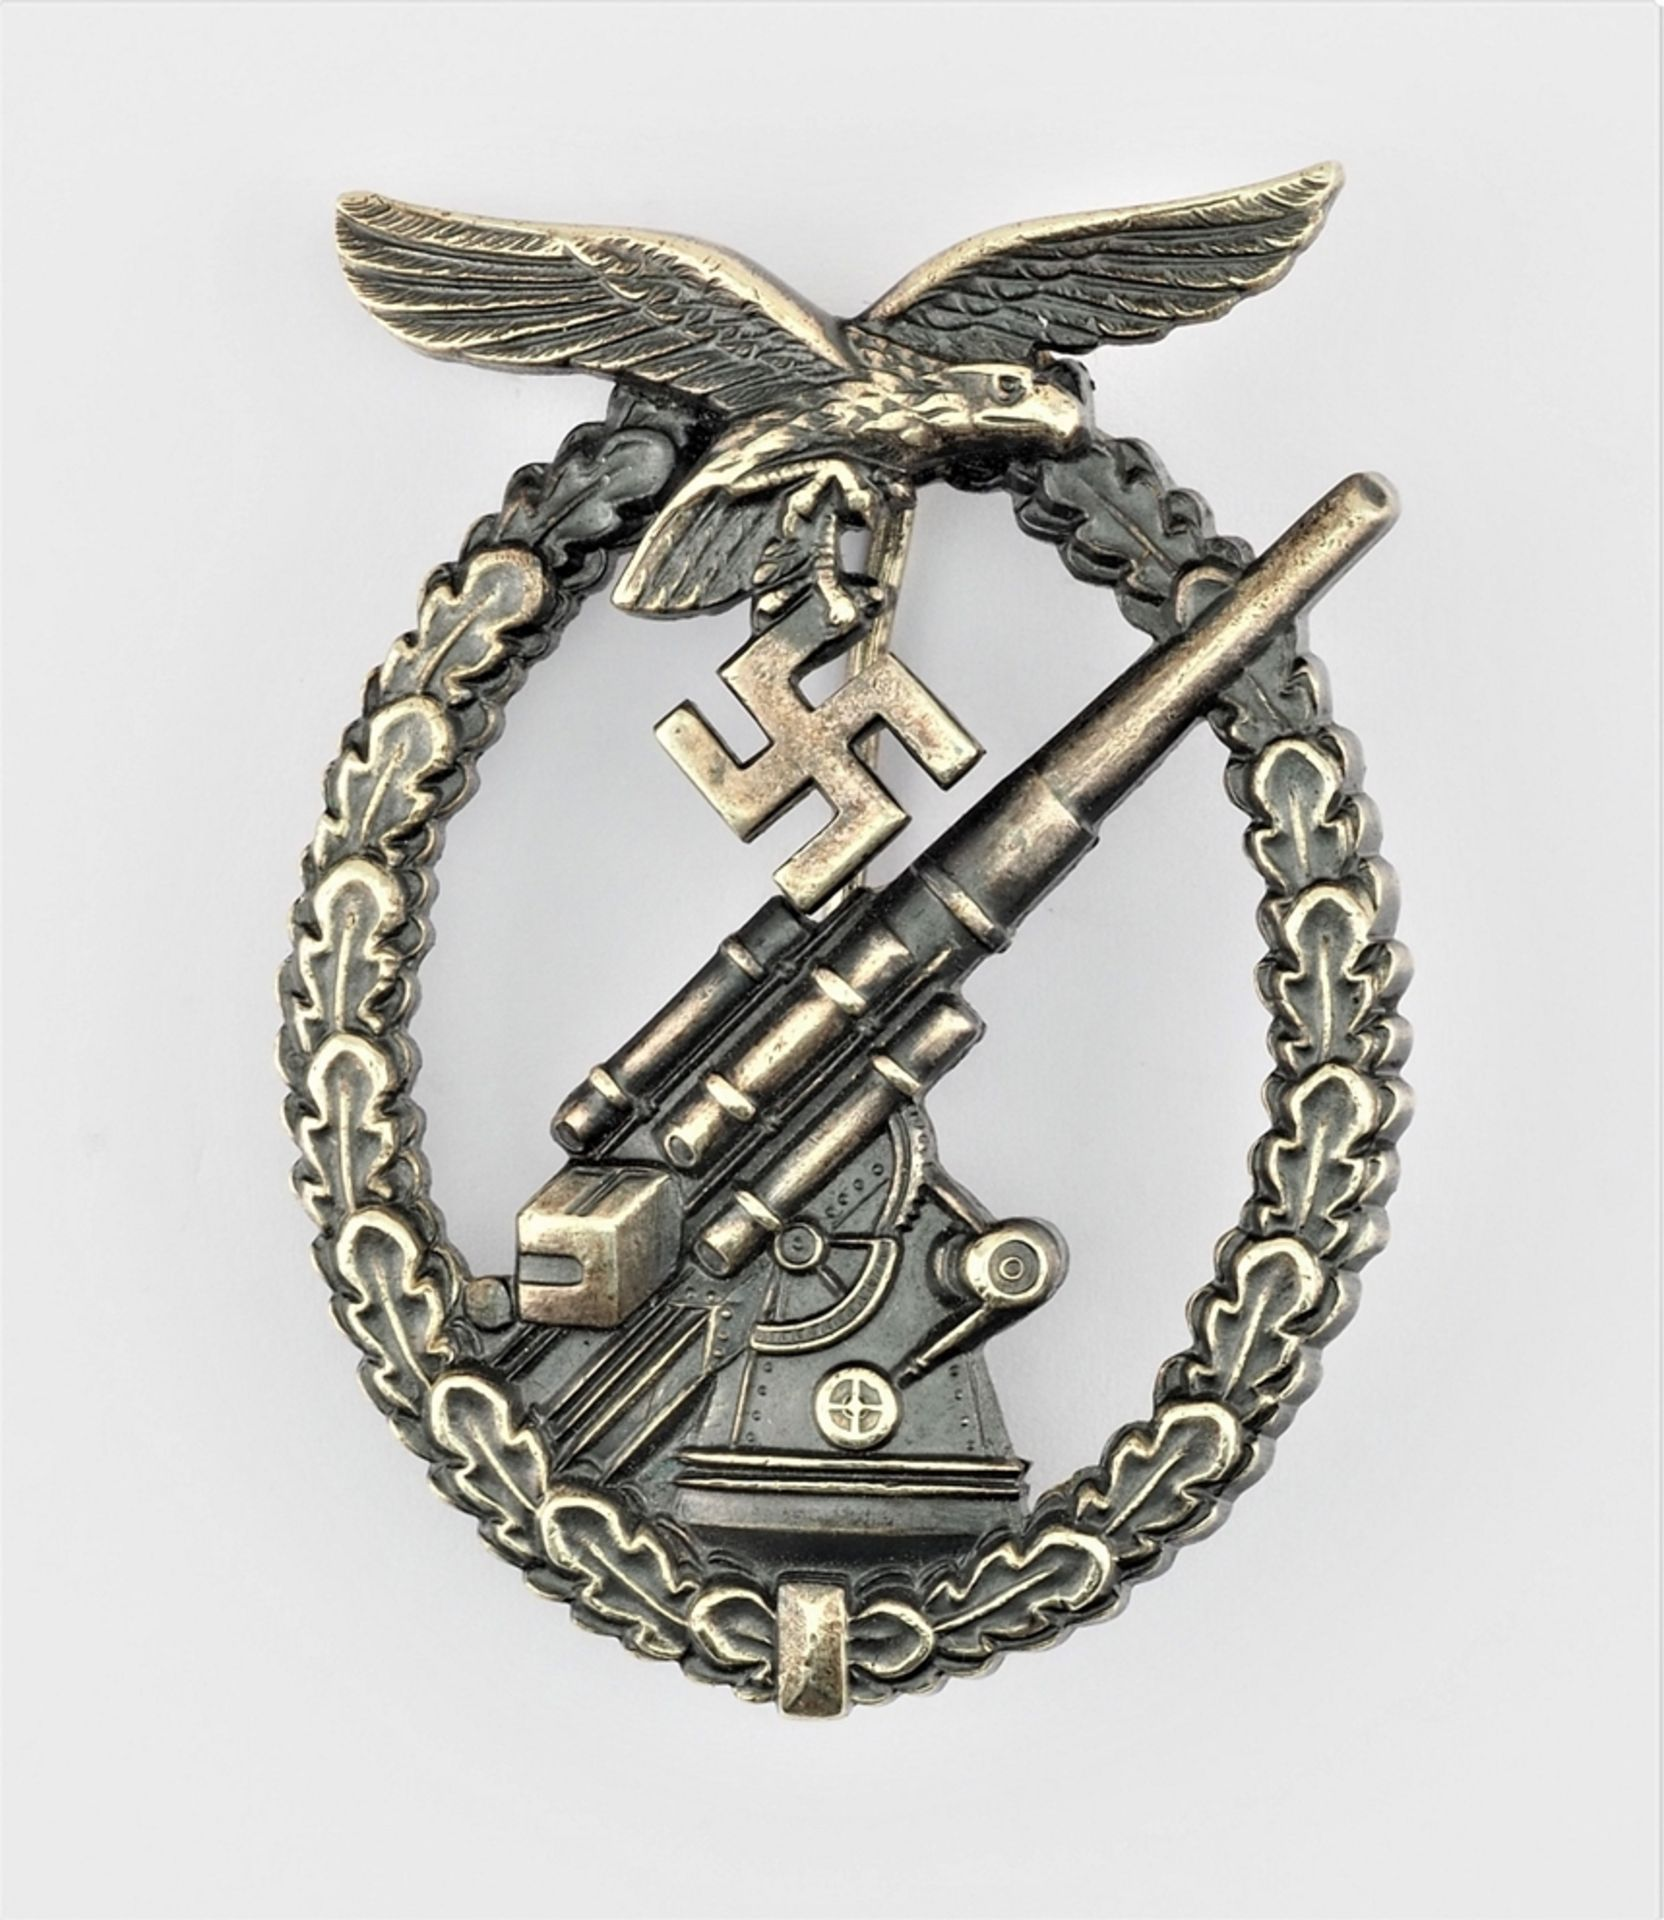 World War 2, Third Reich, Medals & Decorations Legacy: Commanding General of the Luftwaffe (Wehrmac - Image 24 of 27